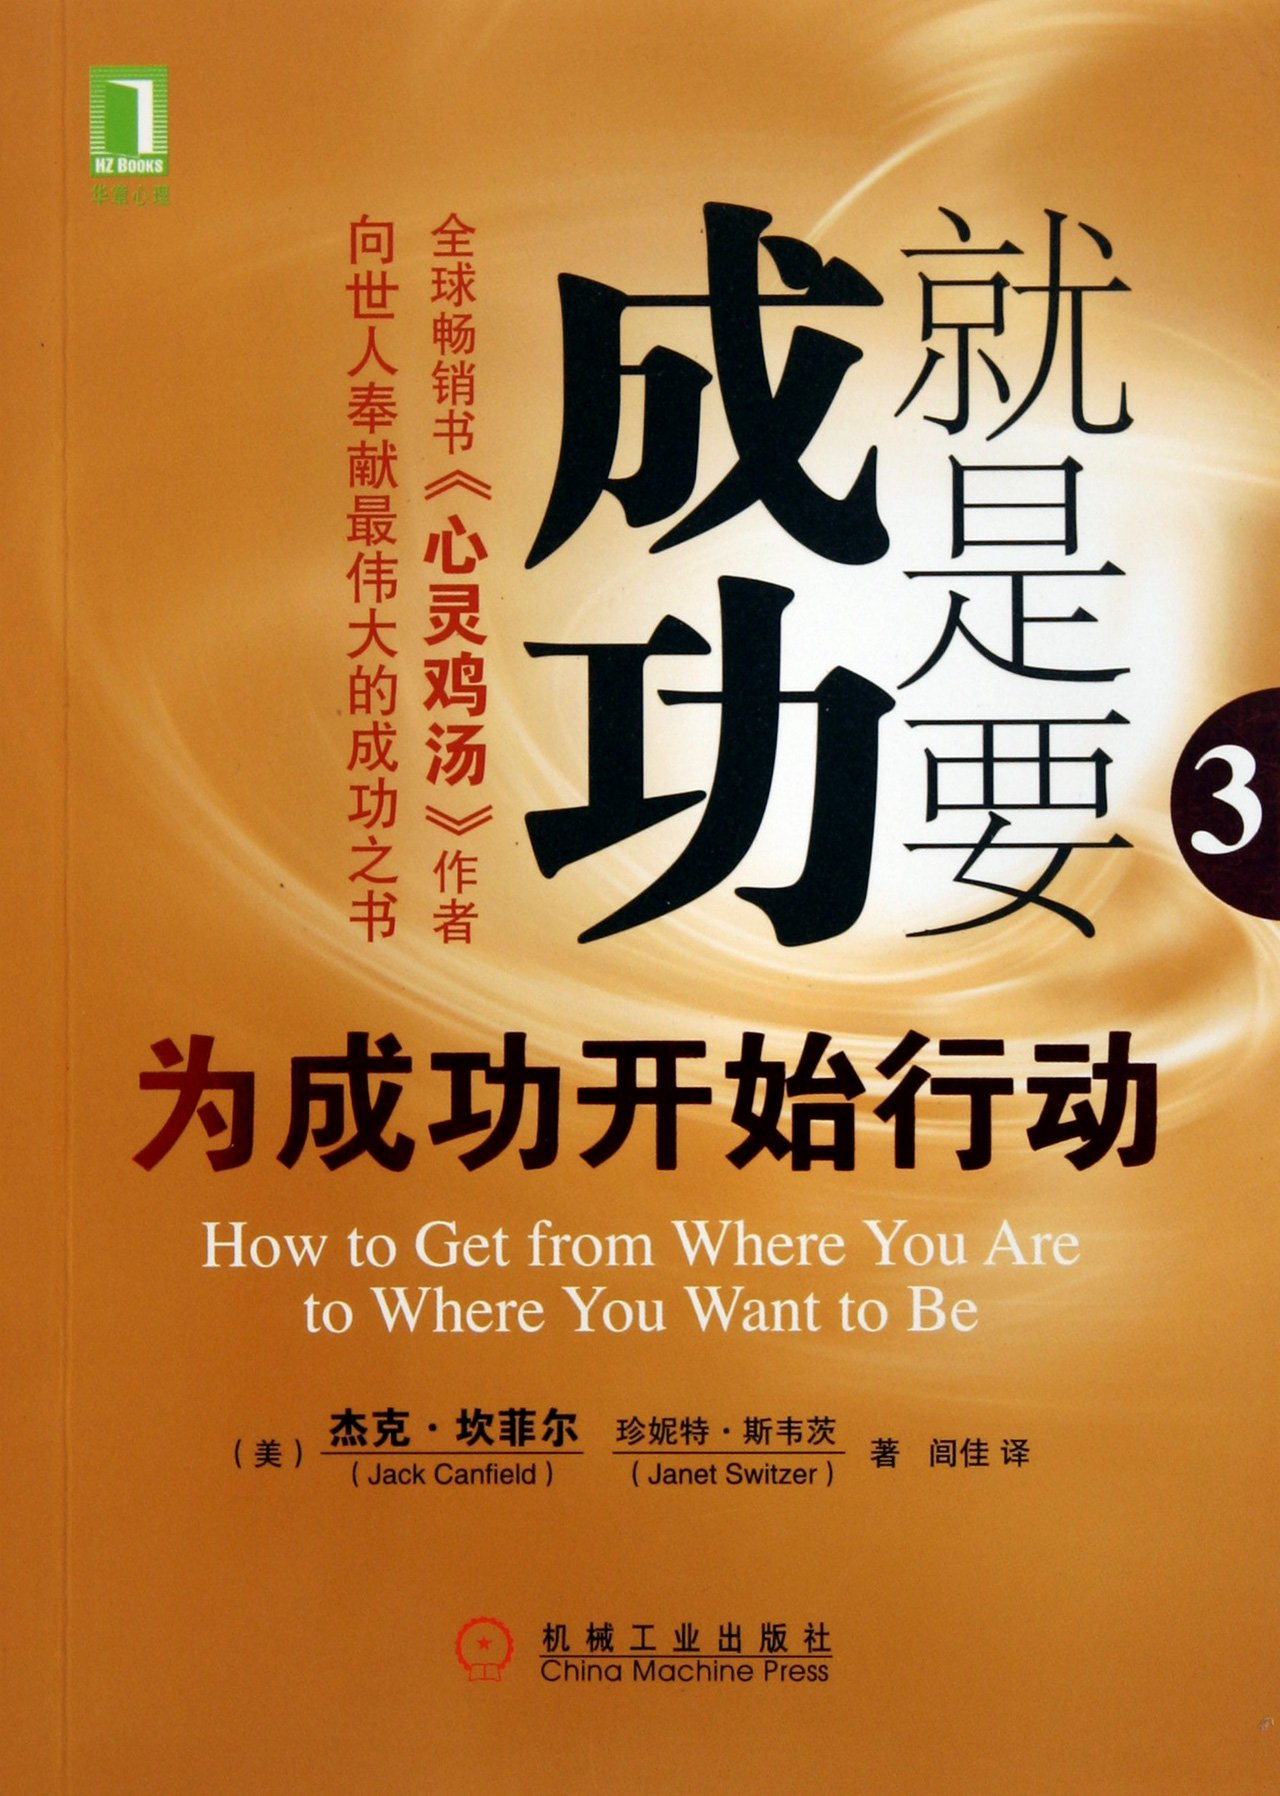 Download How to Get from Where You Are to Where You Want to Be 3 (Chinese Edition) pdf